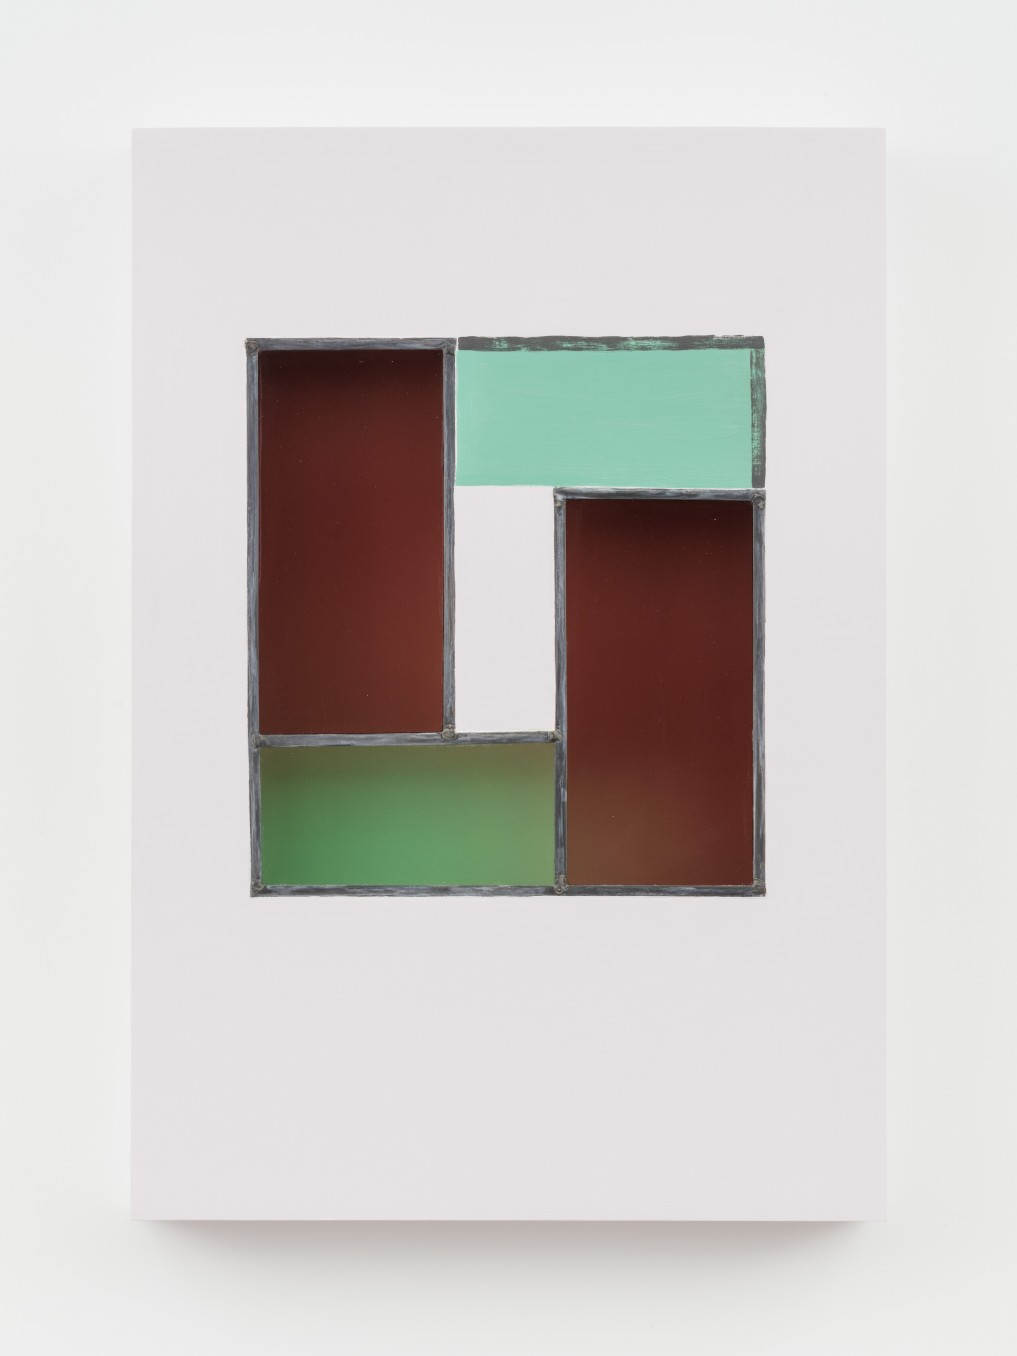 Jessica Warboys, HOUR IV, 2019, Acrylic, antique glass, lead came, plywood, 87 x 59.7 x 8.9 cm, 34 1/4 x 23 1/2 x 3 1/2 in